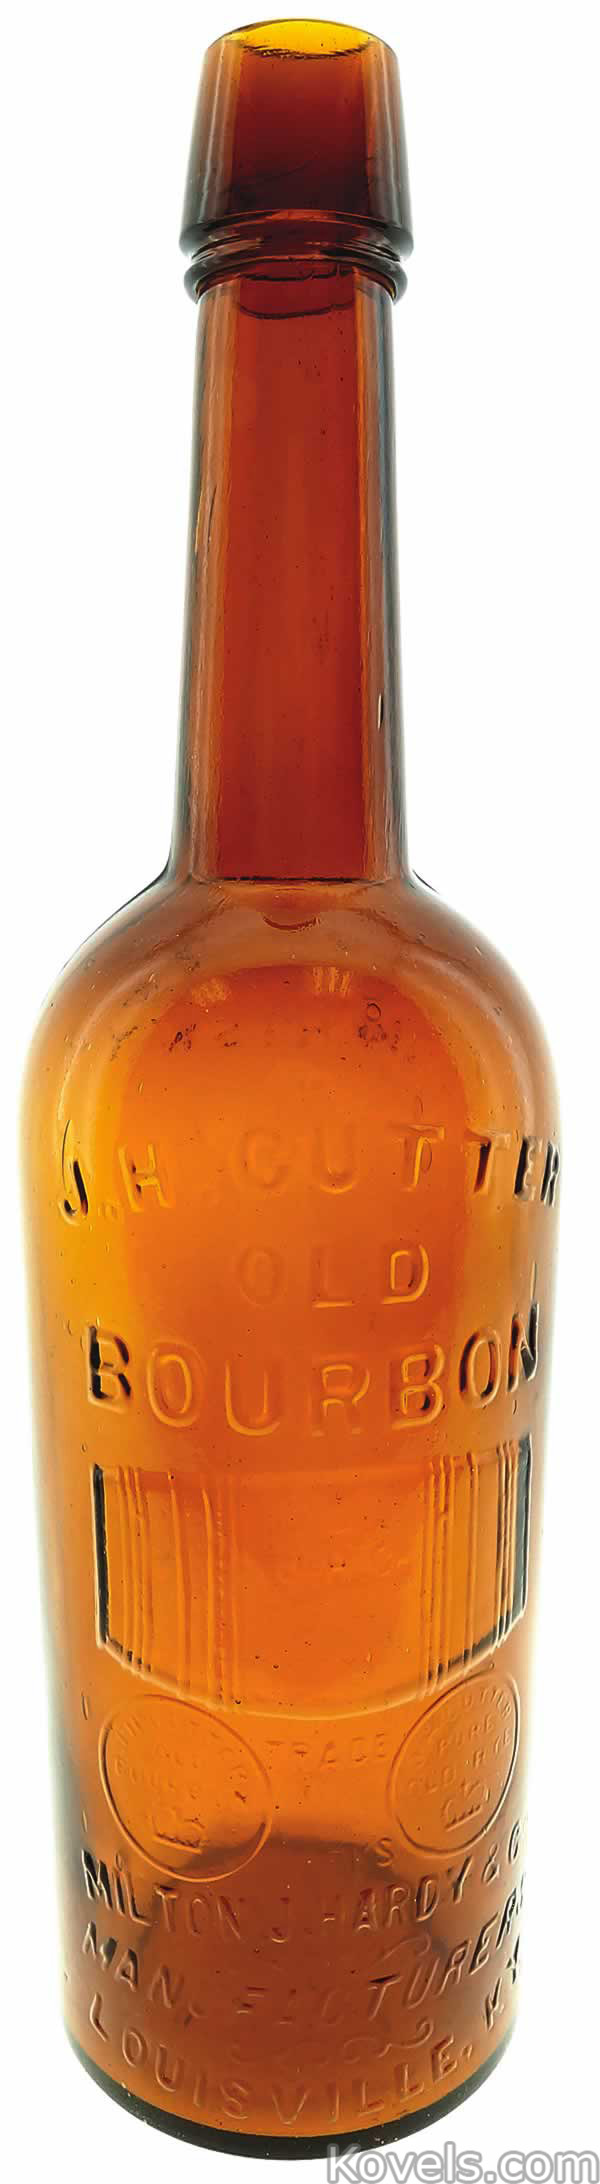 Antique Trader Bottles: Identification & Price Guide ...